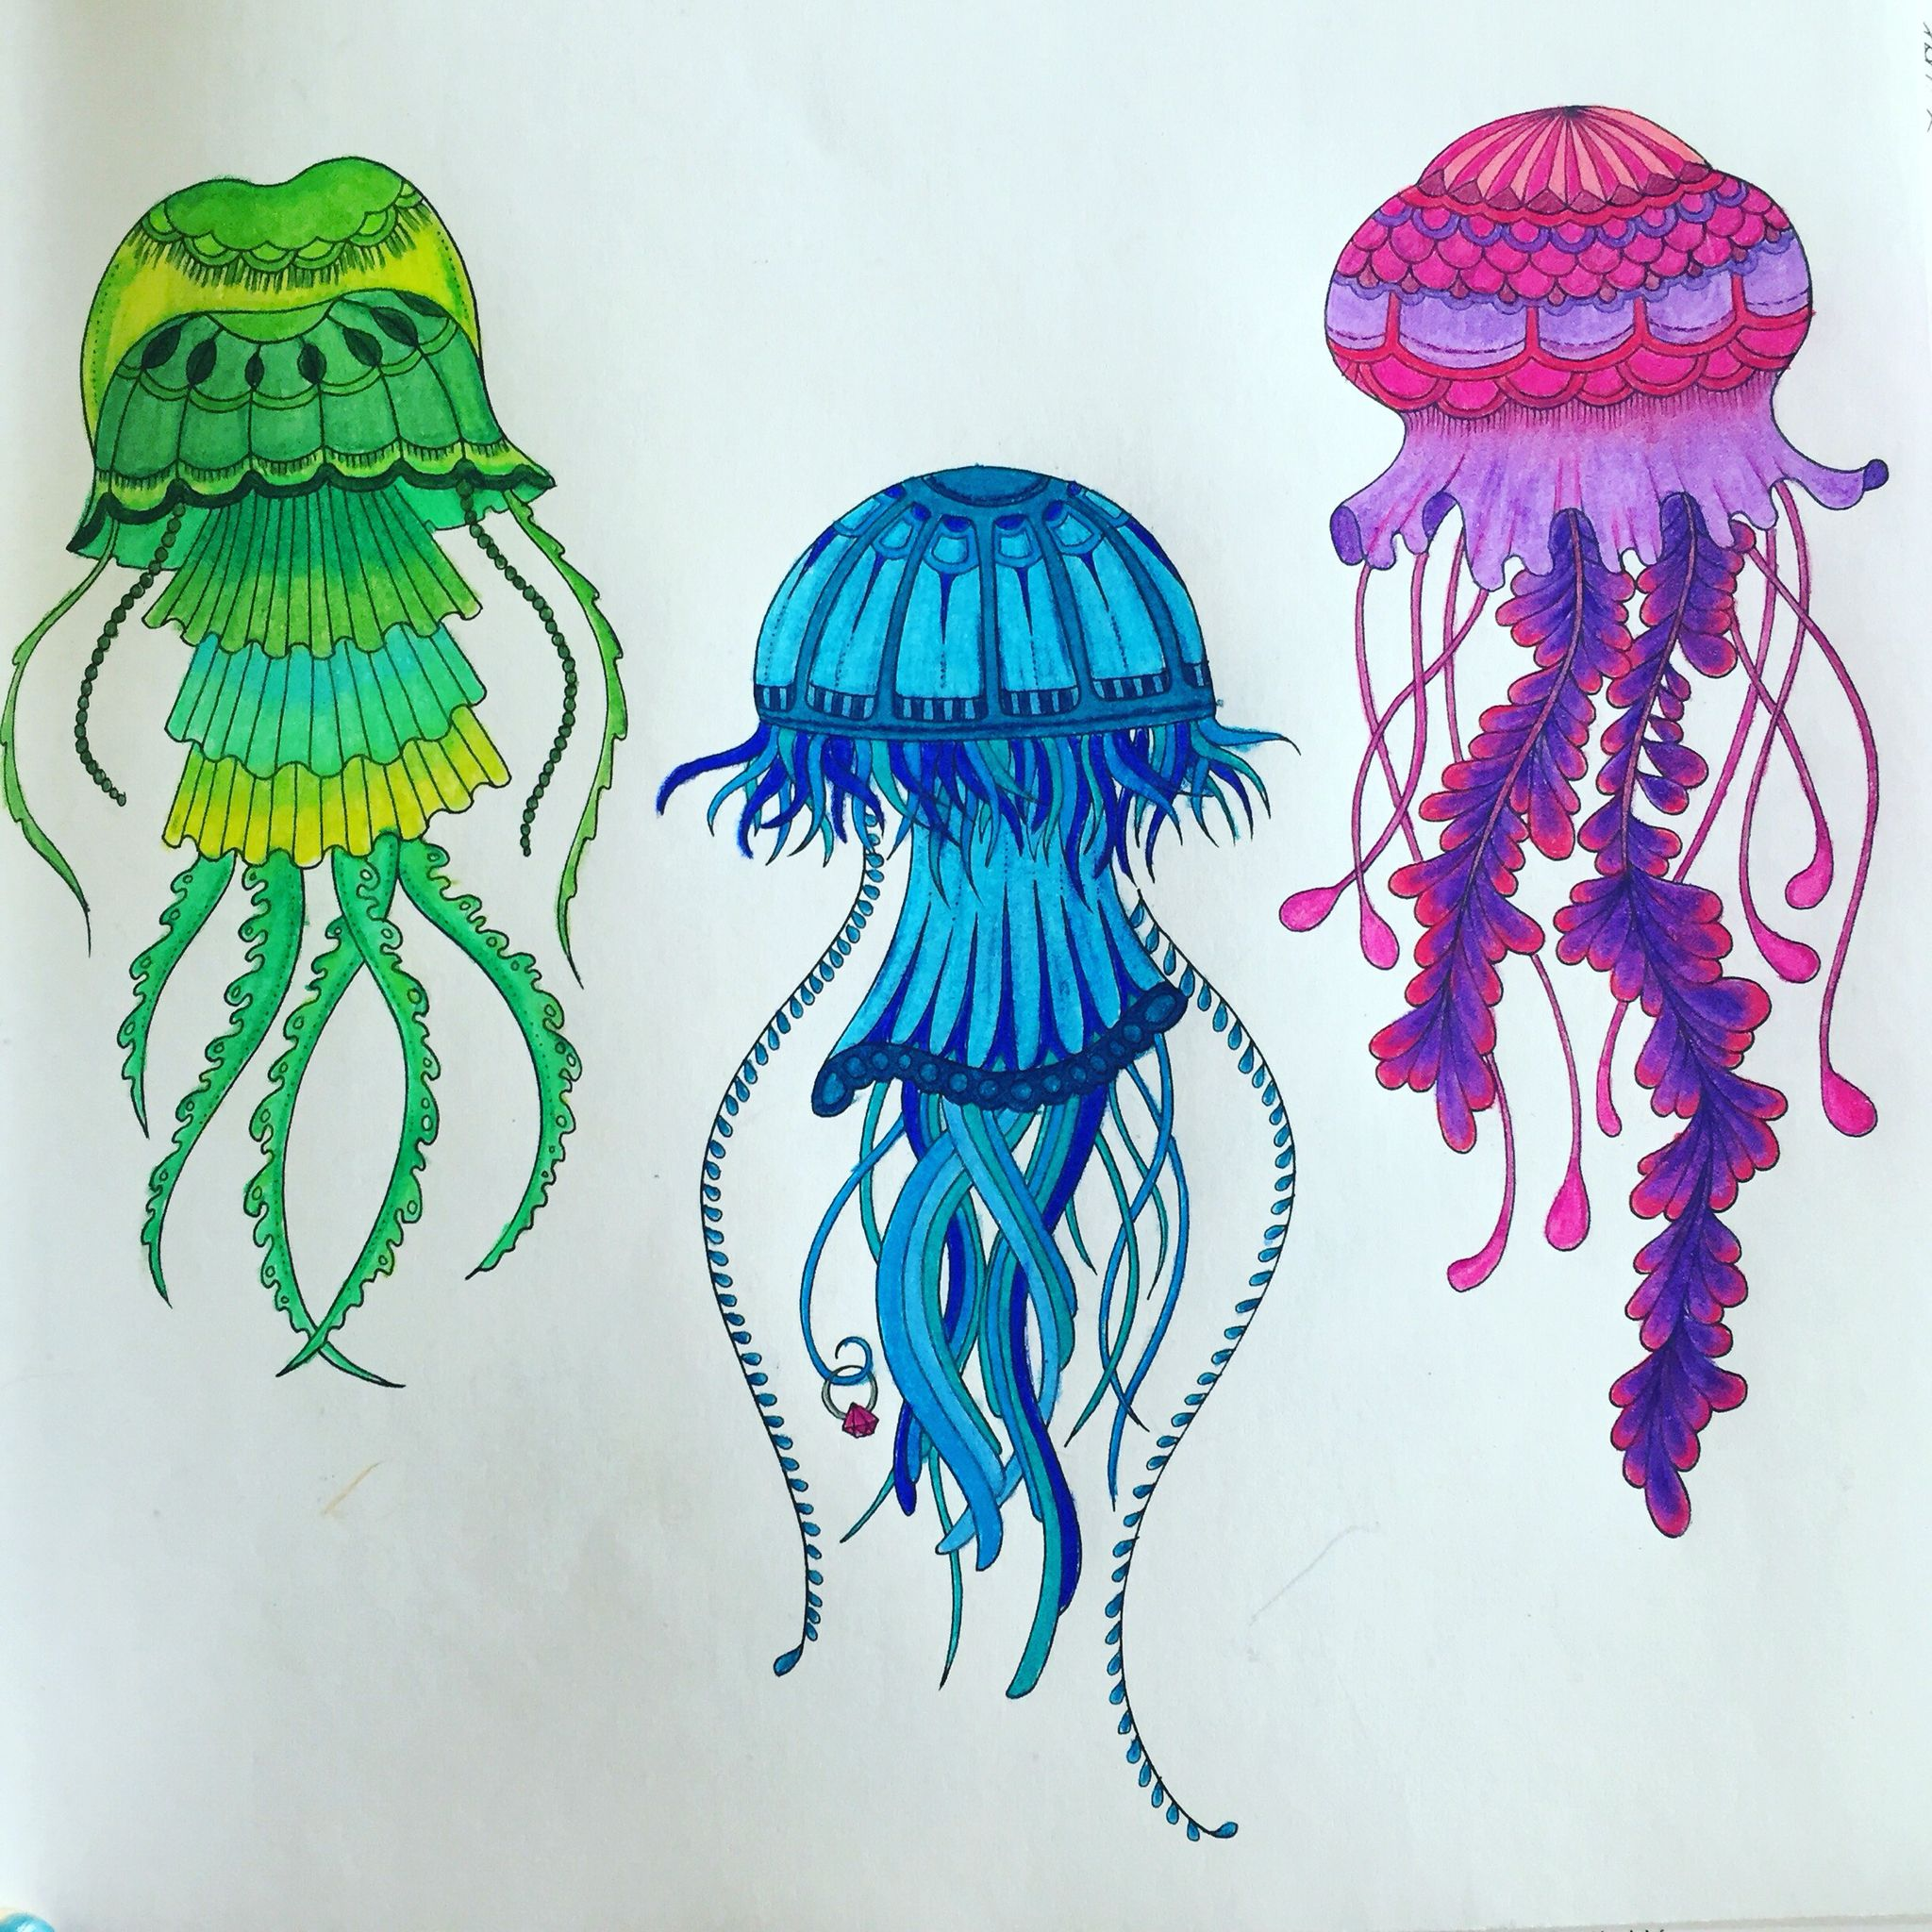 Lost Ocean AdultColoring Book By Johanna Basford Rainbow Jellyfish